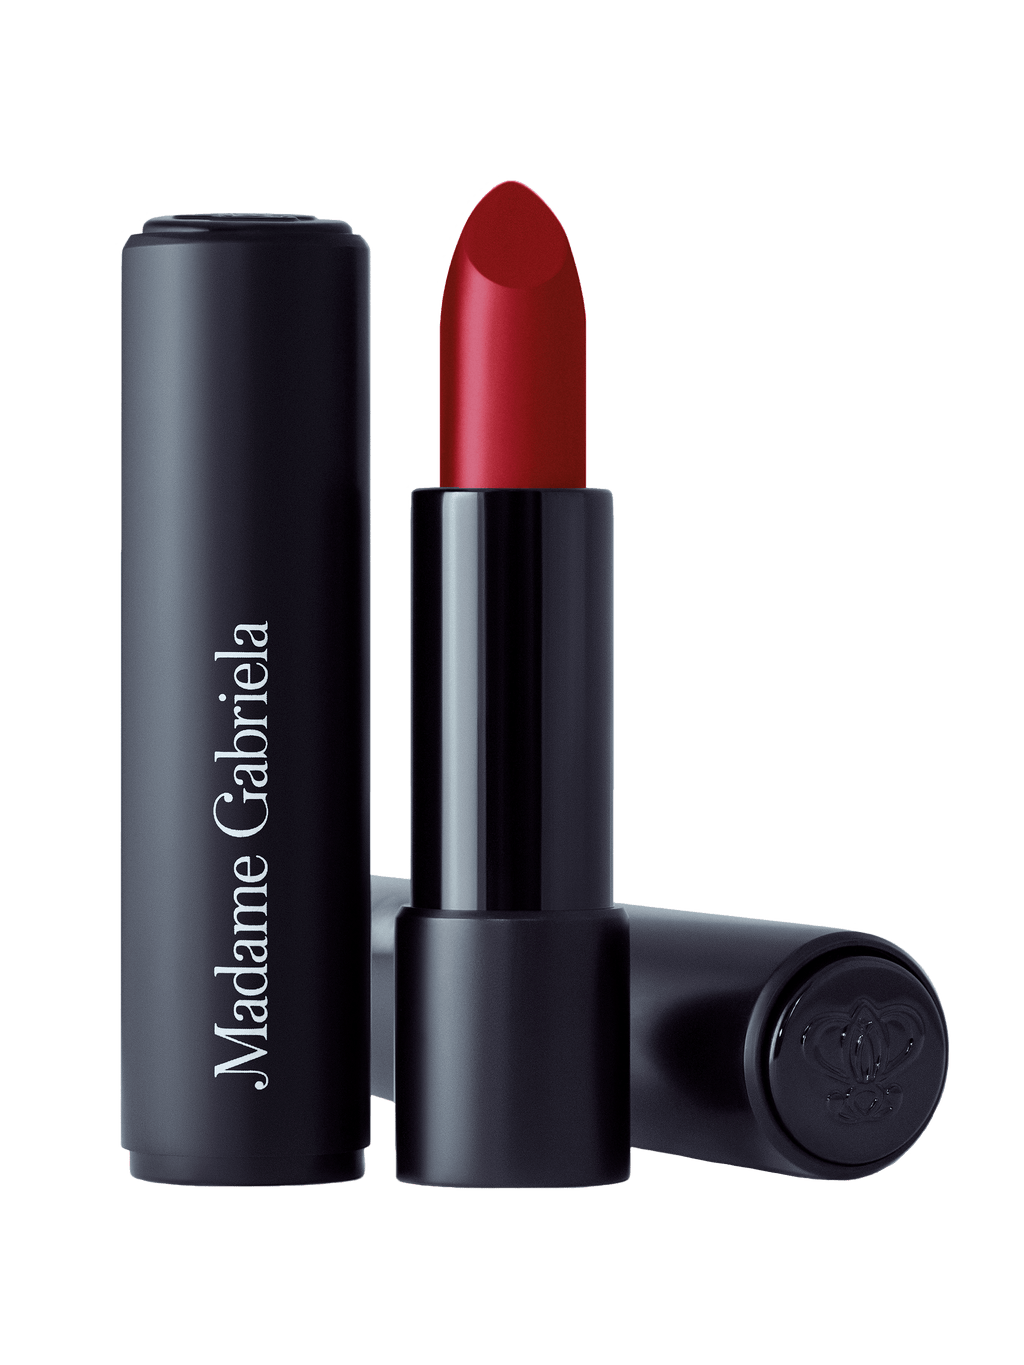 Madame Gabriela Paris at 7PM Red All-Natural Clean Beauty Lipstick